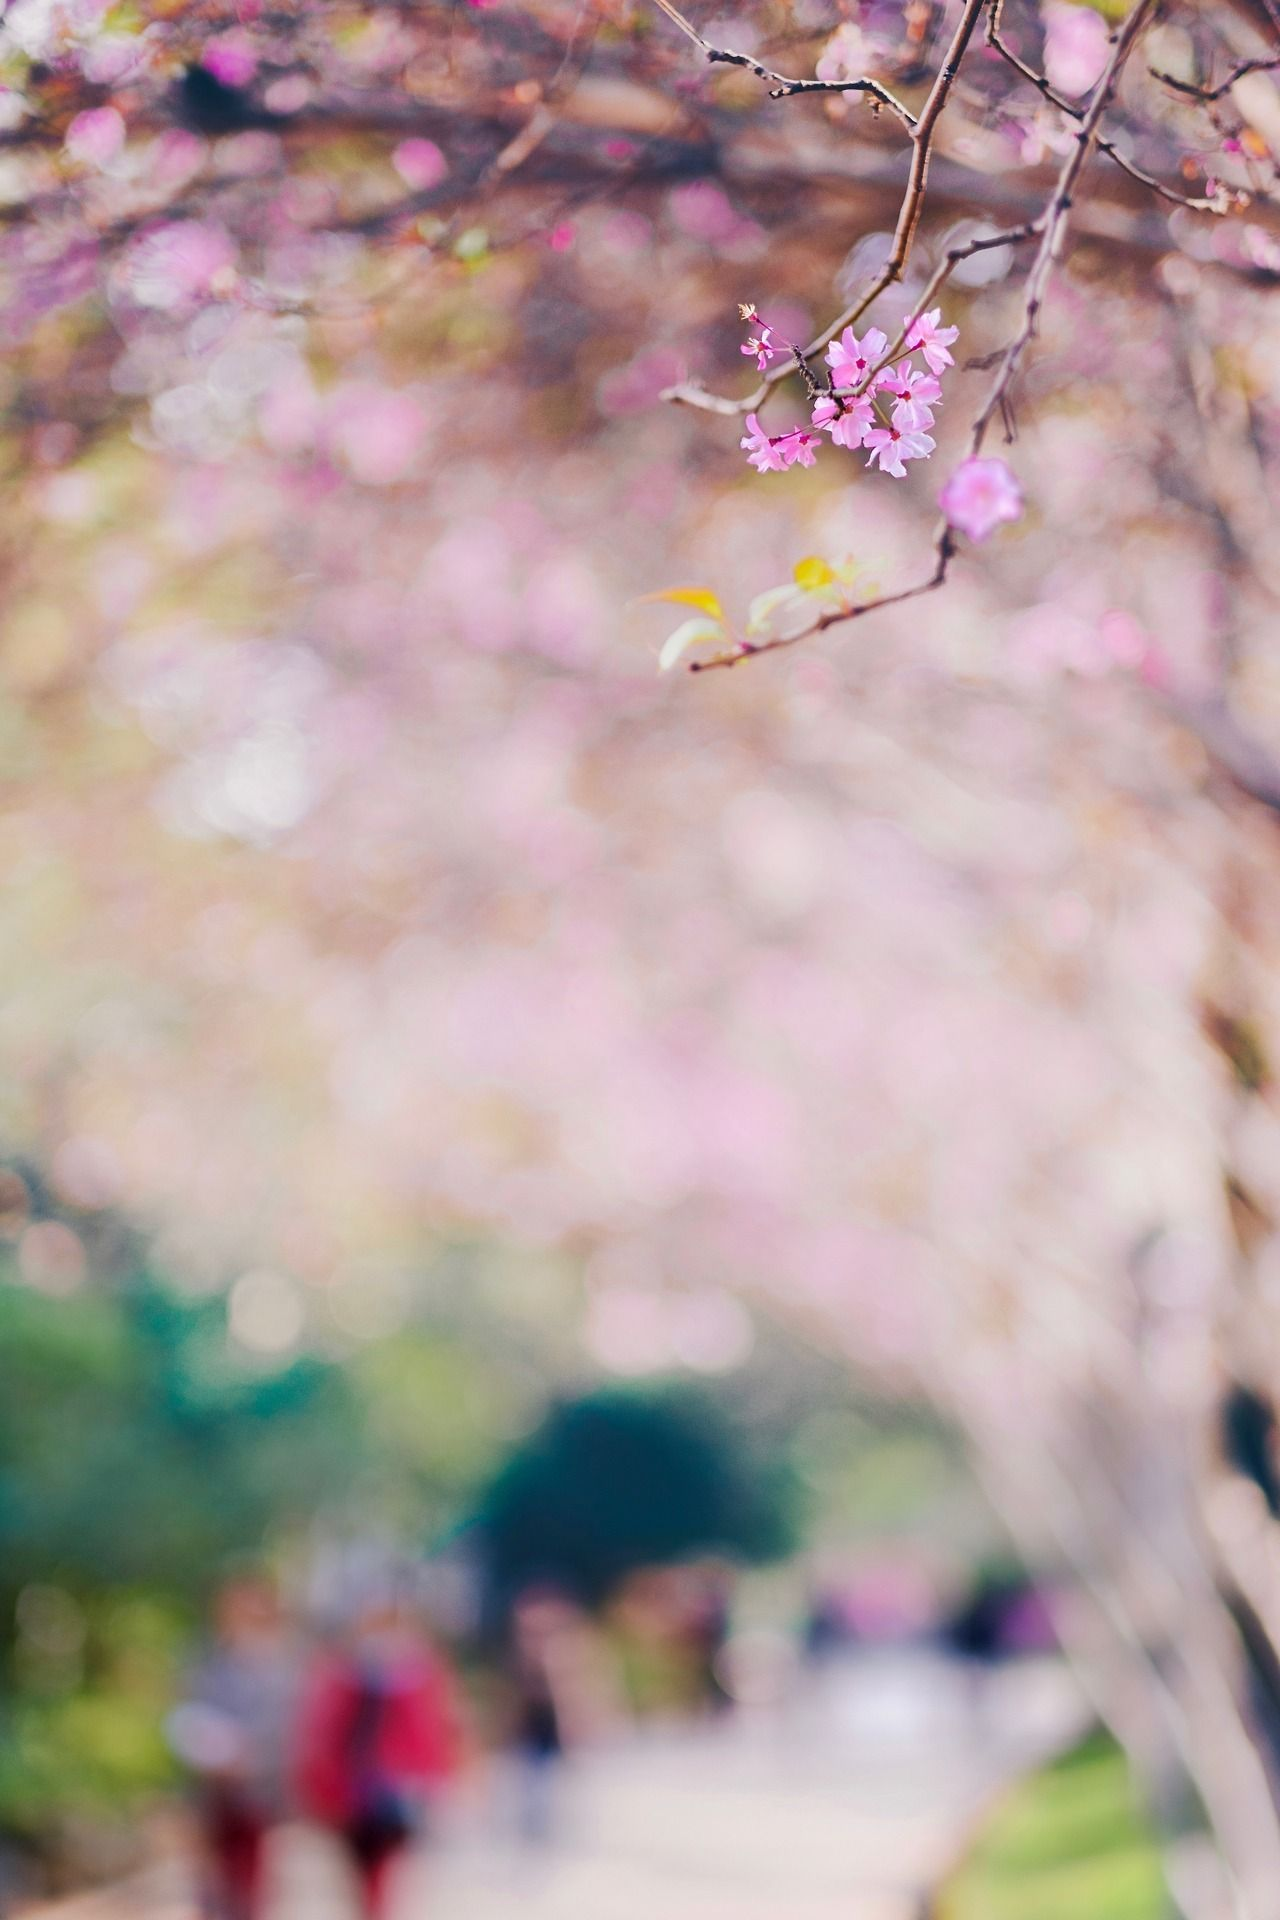 Flânerie - #artists #blossom #china #fujifilm #garden #kunming #landscape #meolog #nature #on #park #photographers #photography #source: #spring #tumblr #x-t2 #xihua